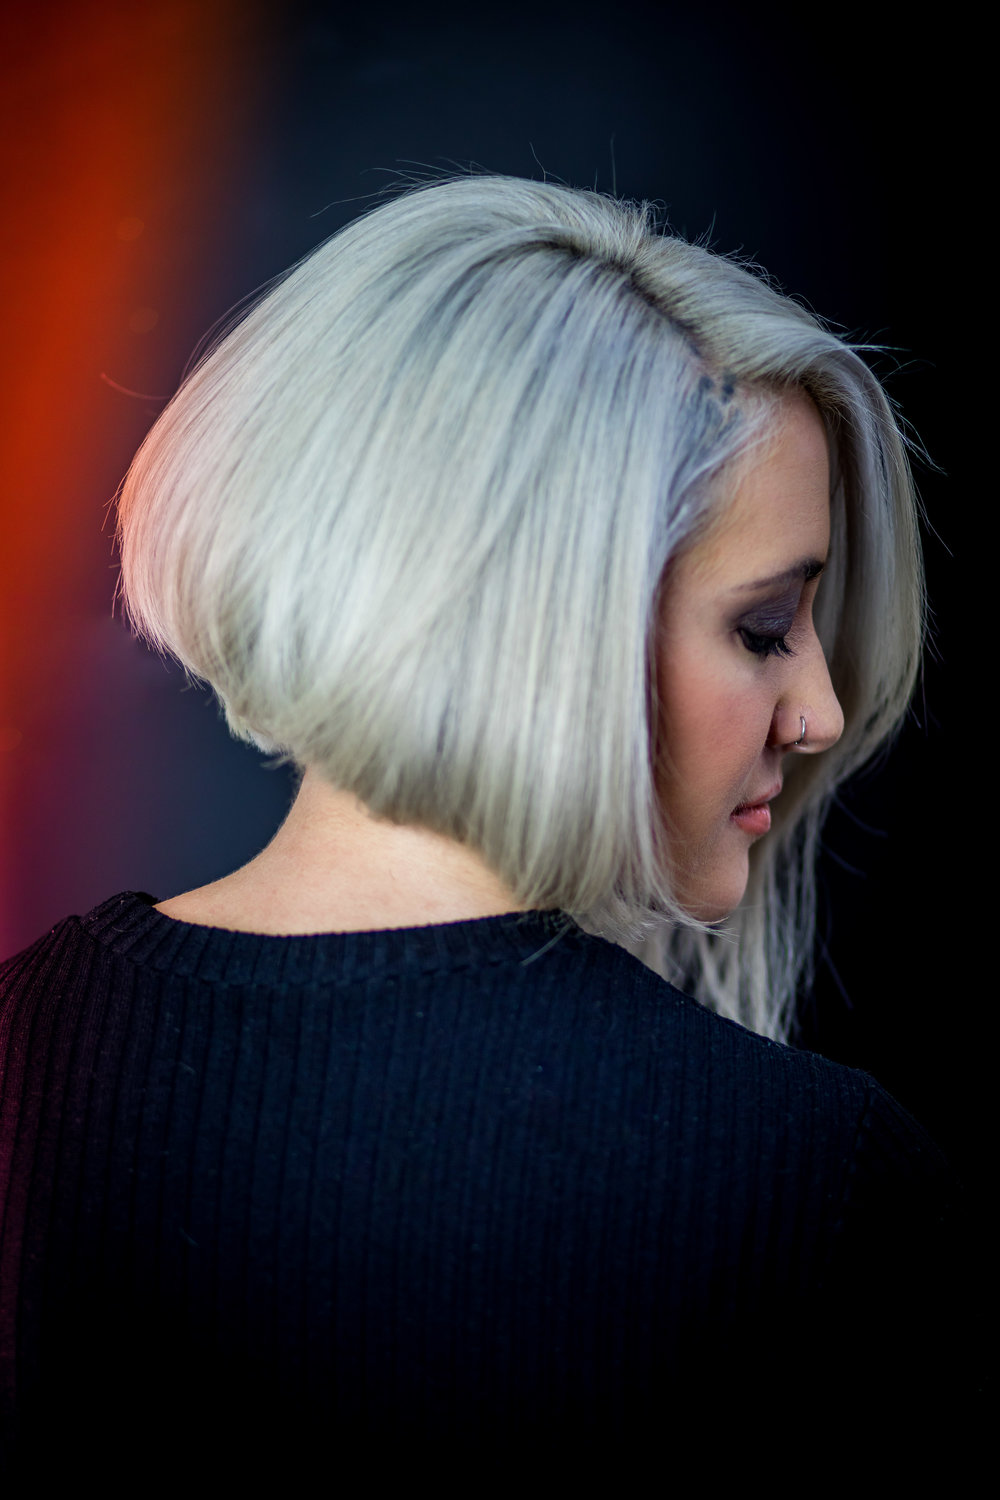 hair.color.art 2018-8148.jpg